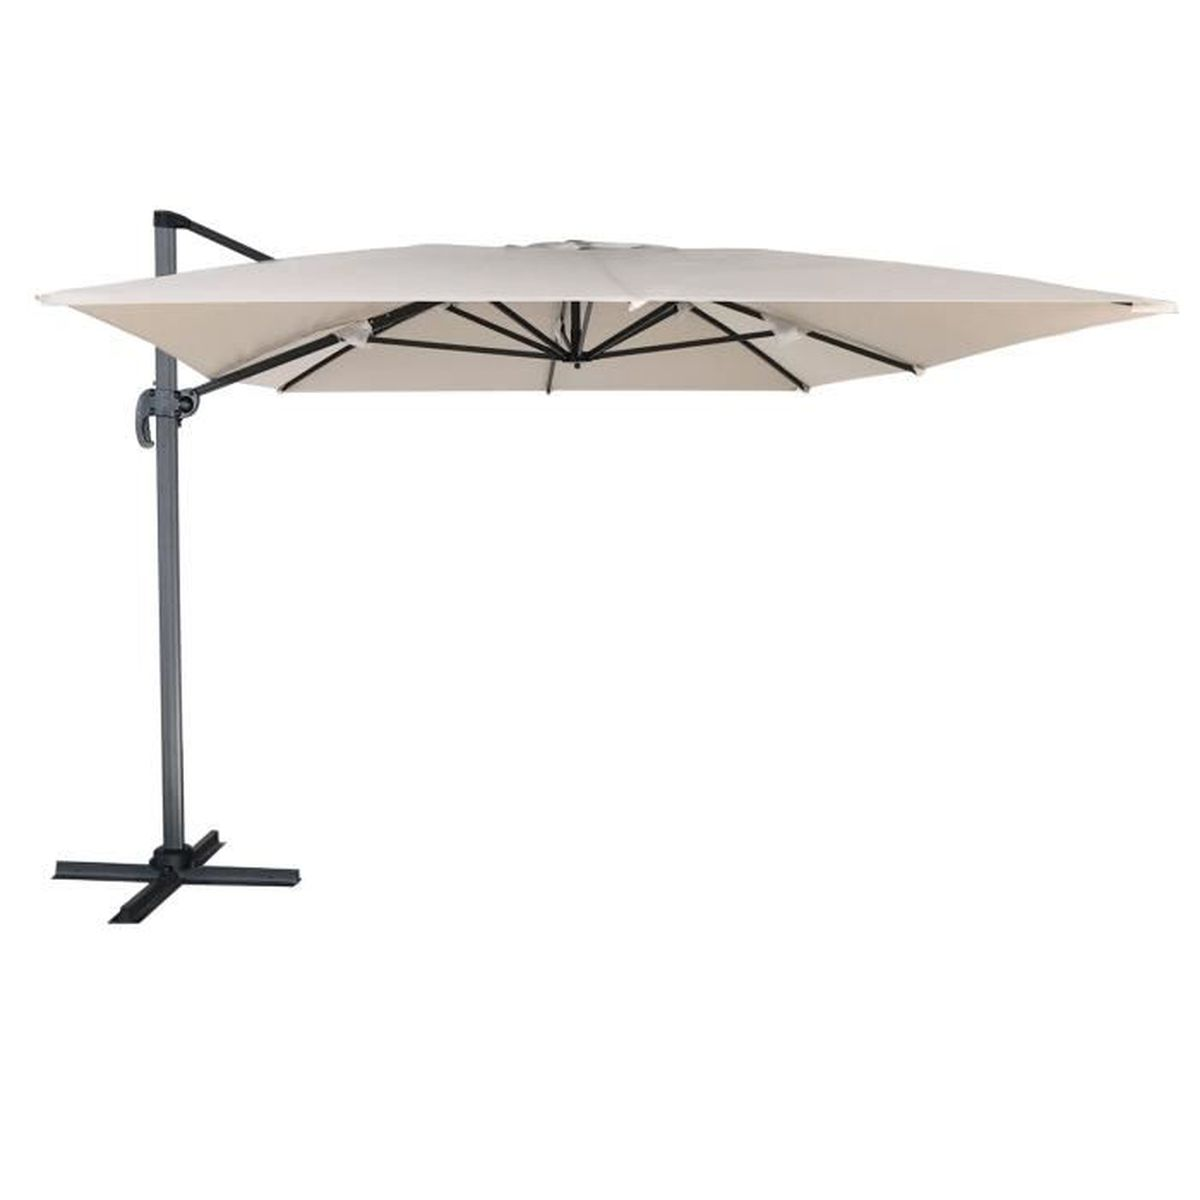 120 parasol rectangulaire parasol rectangulaire 3x2 - Parasol rectangulaire inclinable castorama ...